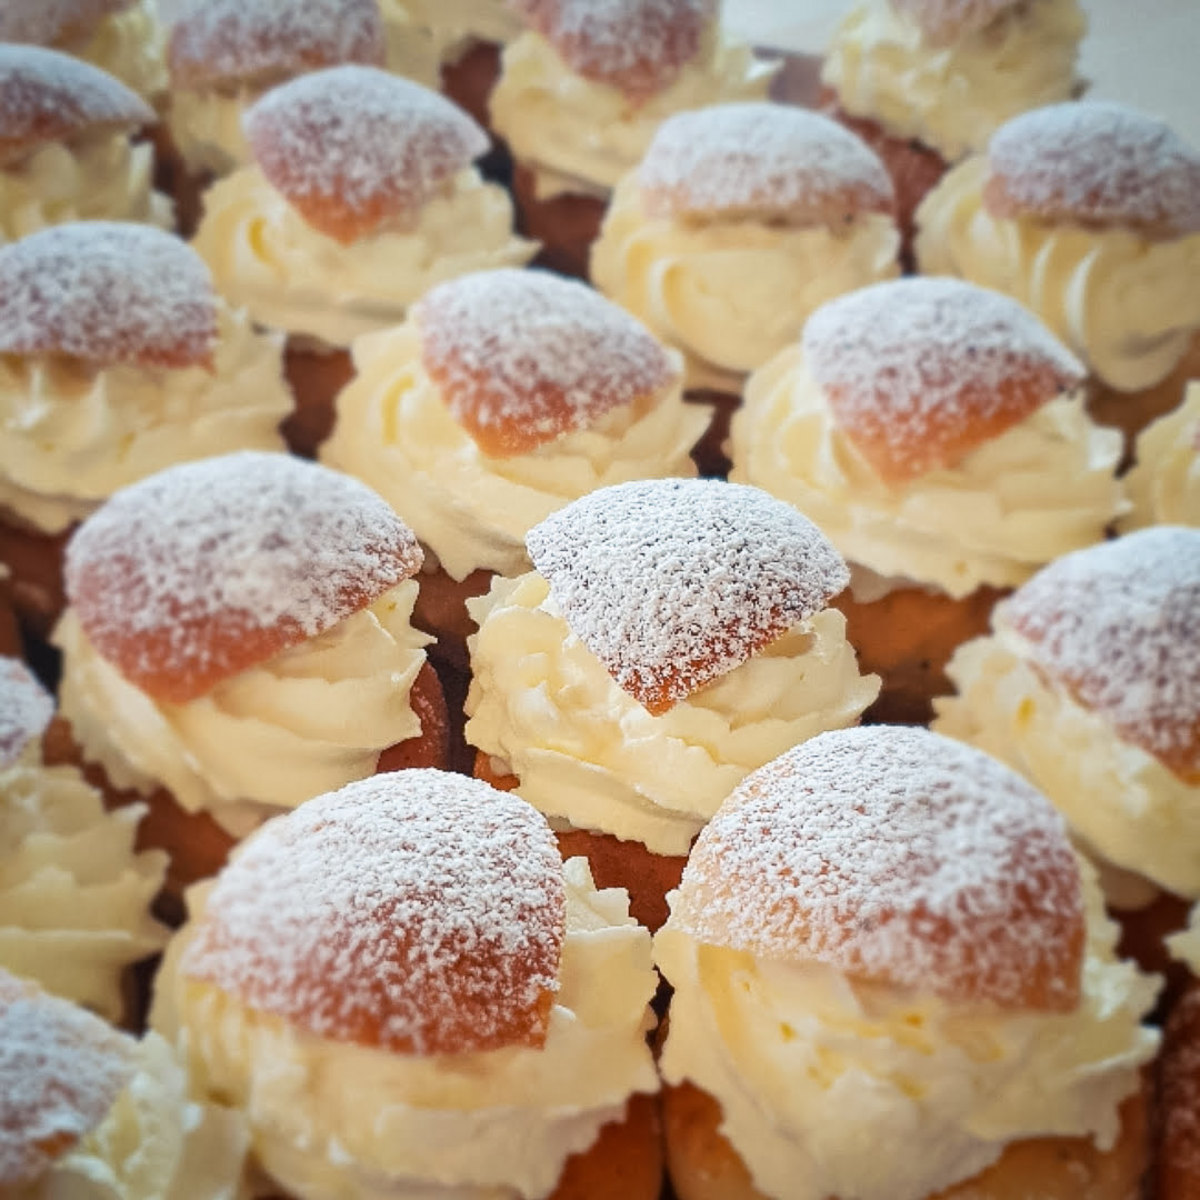 Semlas are buns made from white flour that is a traditional Swedish comfort 'food' invented in 1541. A typical semla is a heavy bun dish covered with cream, chocolates, fruits, and topped with hot milk and raisins.